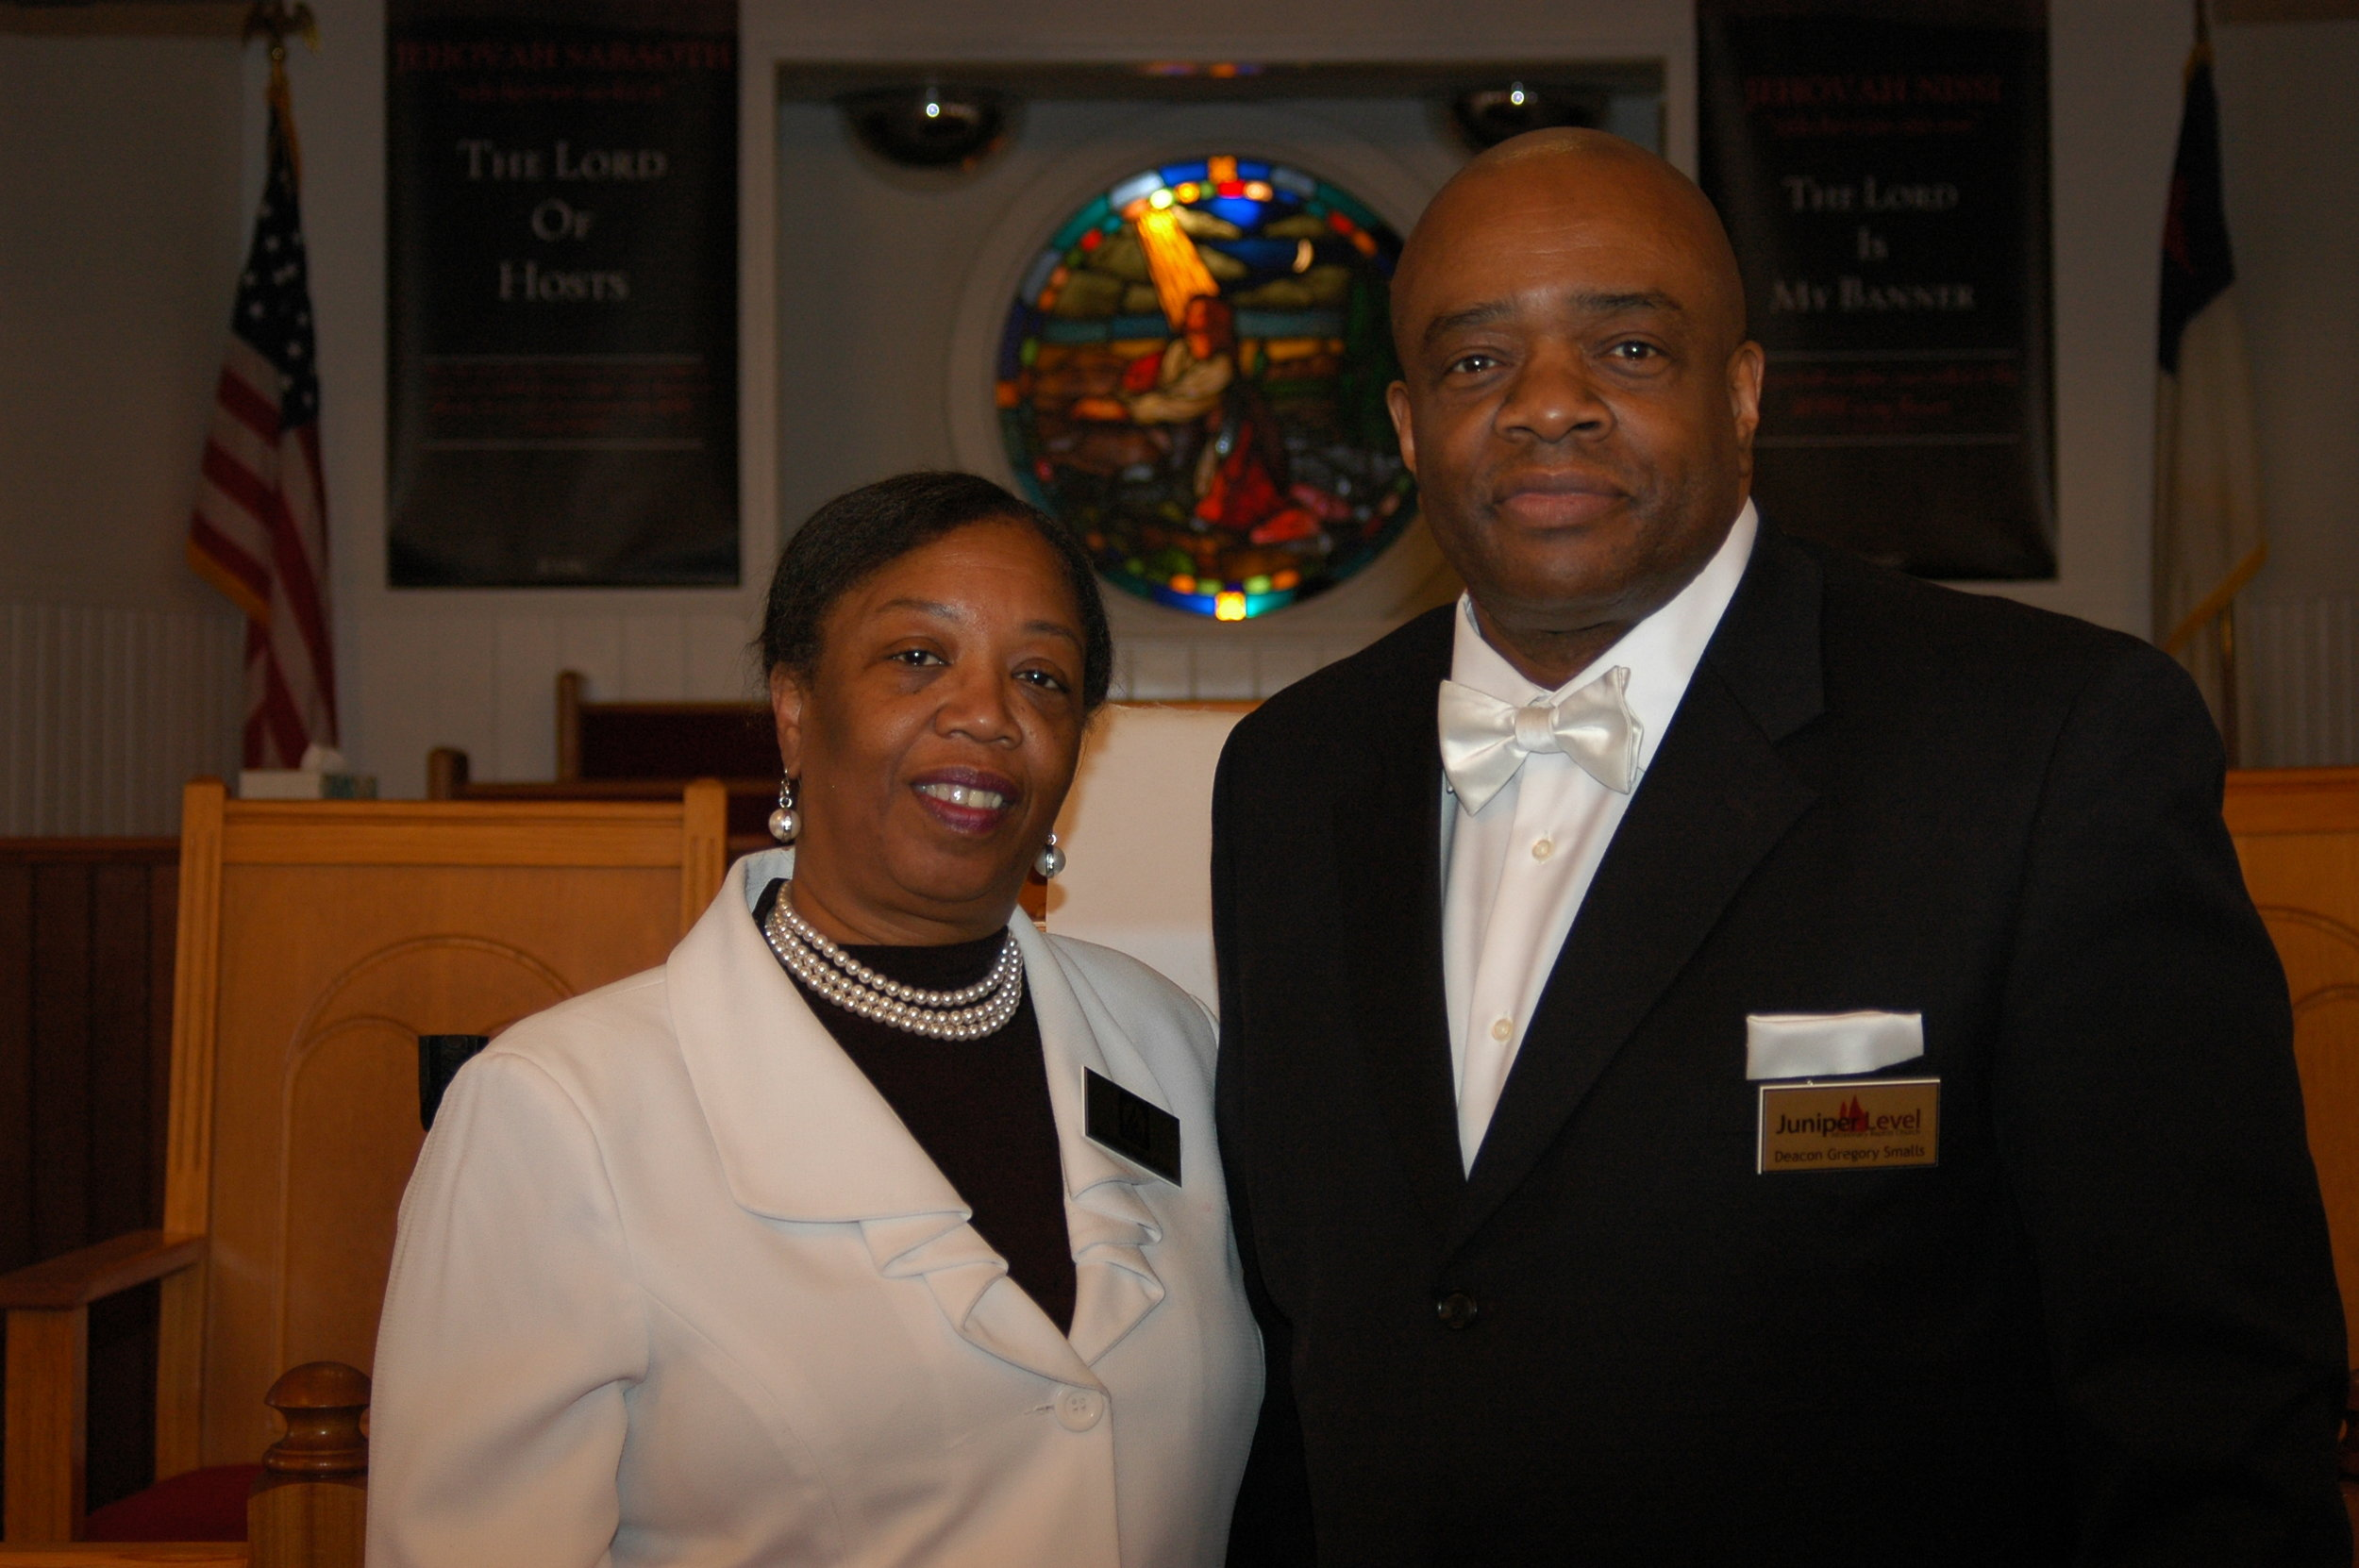 Deacon and Deaconess Gregory and Yvette Smalls